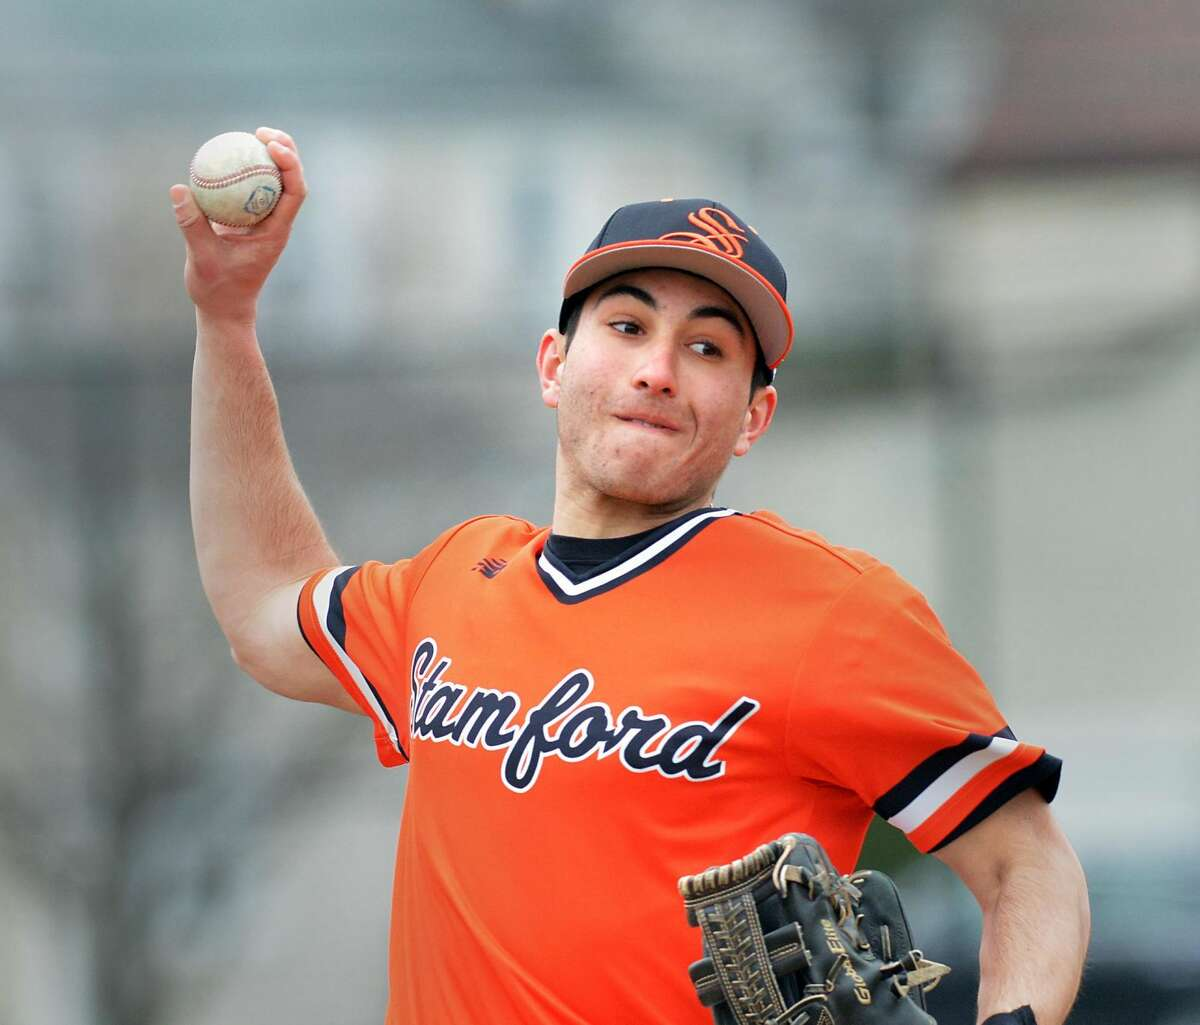 Nick Otis of Stamford pitches during the high school baseball game between Stamford High School and Foran High School at Stamford High School, Conn., Saturday, April 7, 2018. Foran won the game 8-5 over Stamford.